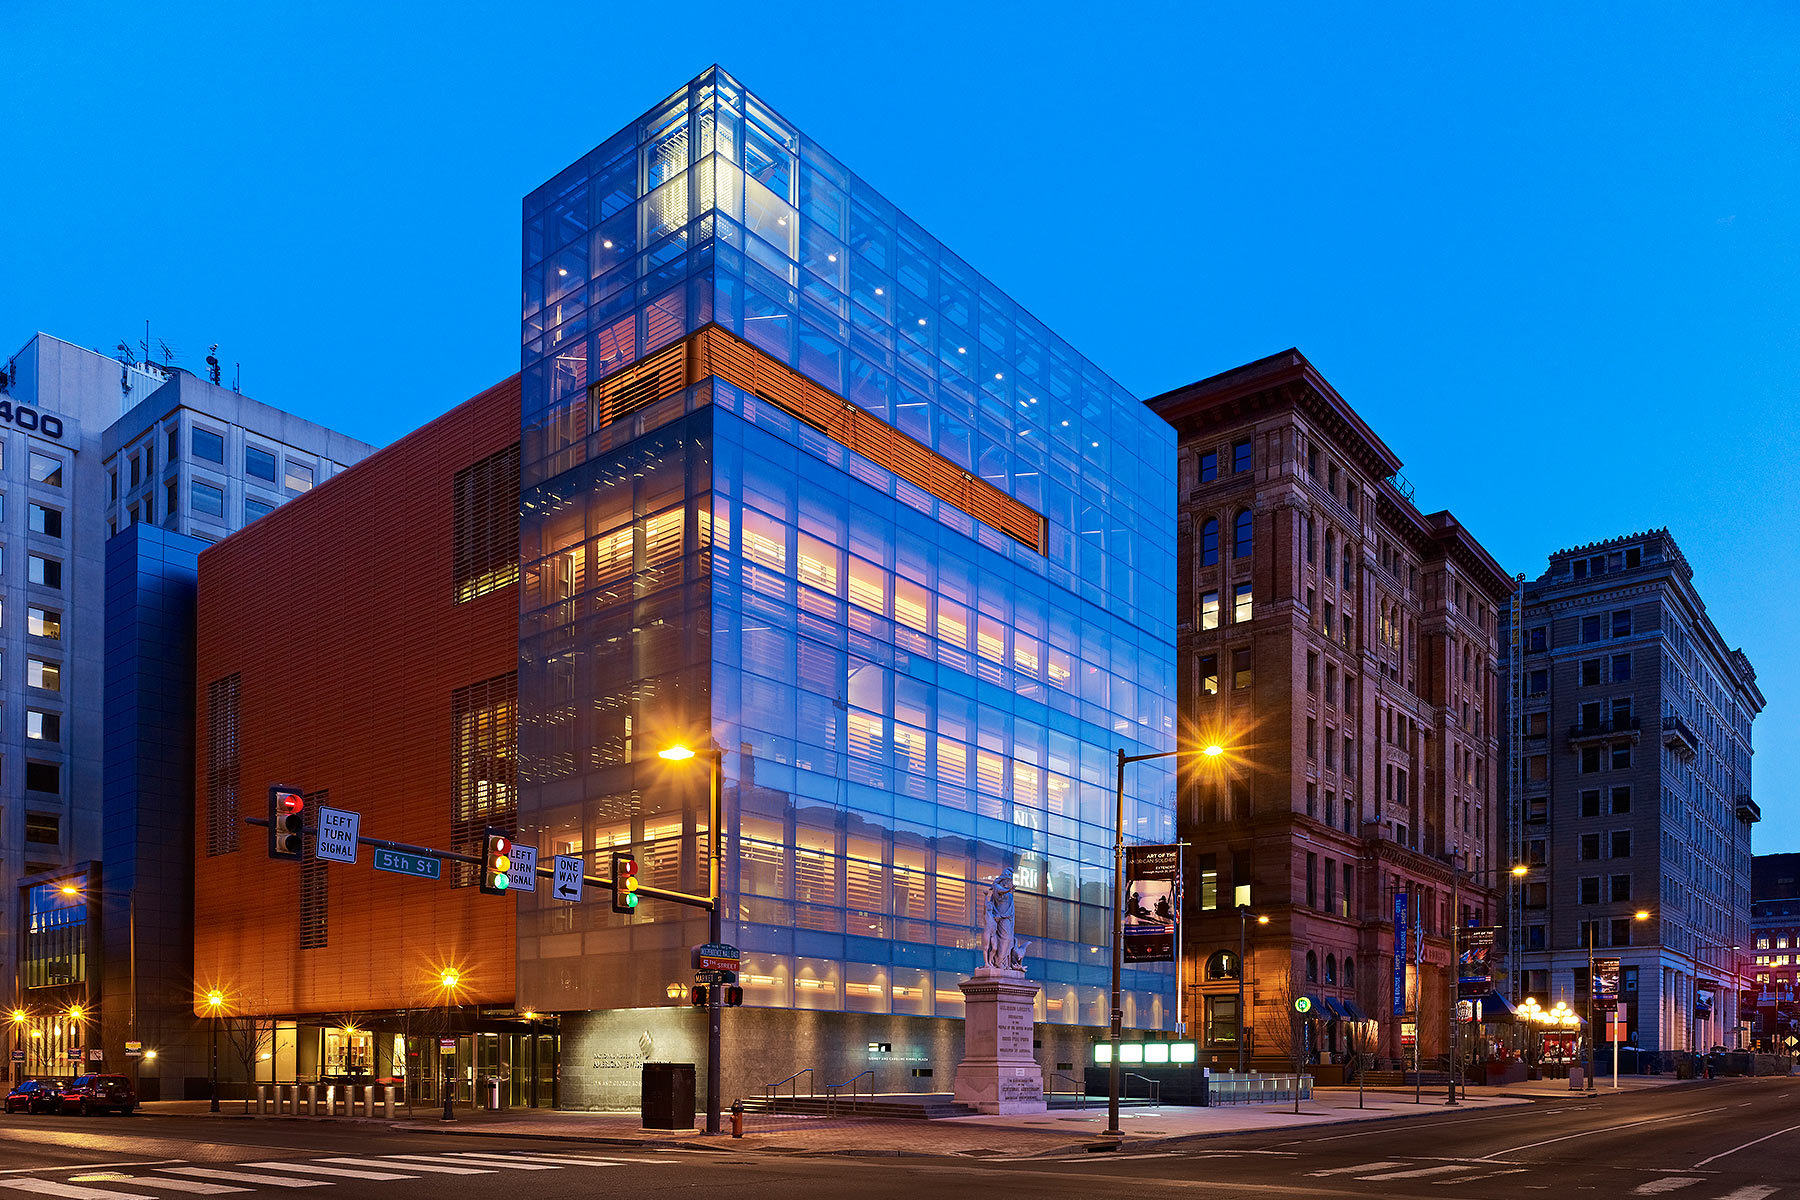 Family Membership   The National Jewish History Museum   Family Membership includes core benefits for two adults and all children as well as two complimentary guest passes, invitations to family friendly programs, and free admission to their annual December 25th Family Day of Fun.  Retail Value: $90